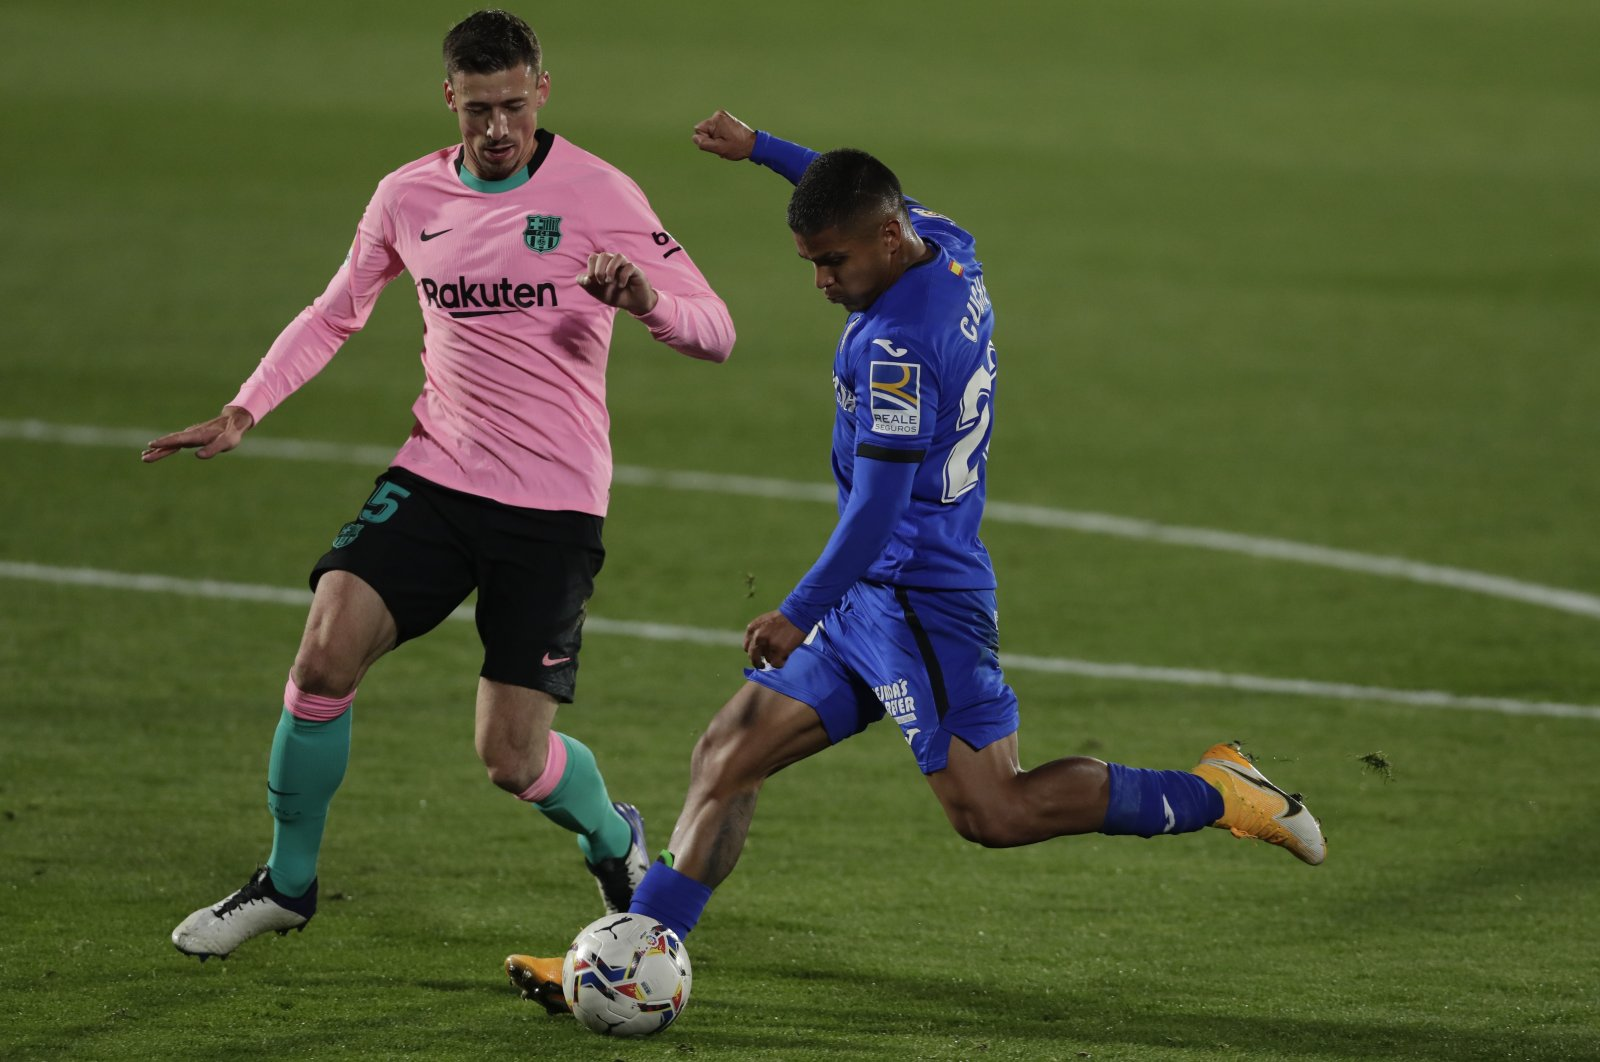 Getafe's Cucho Hernandez (R) takes a shot with Barcelona's Sergio Busquets trying to interrupt during a La Liga match in Getafe, Spain, Oct. 17, 2020. (AP Photo)